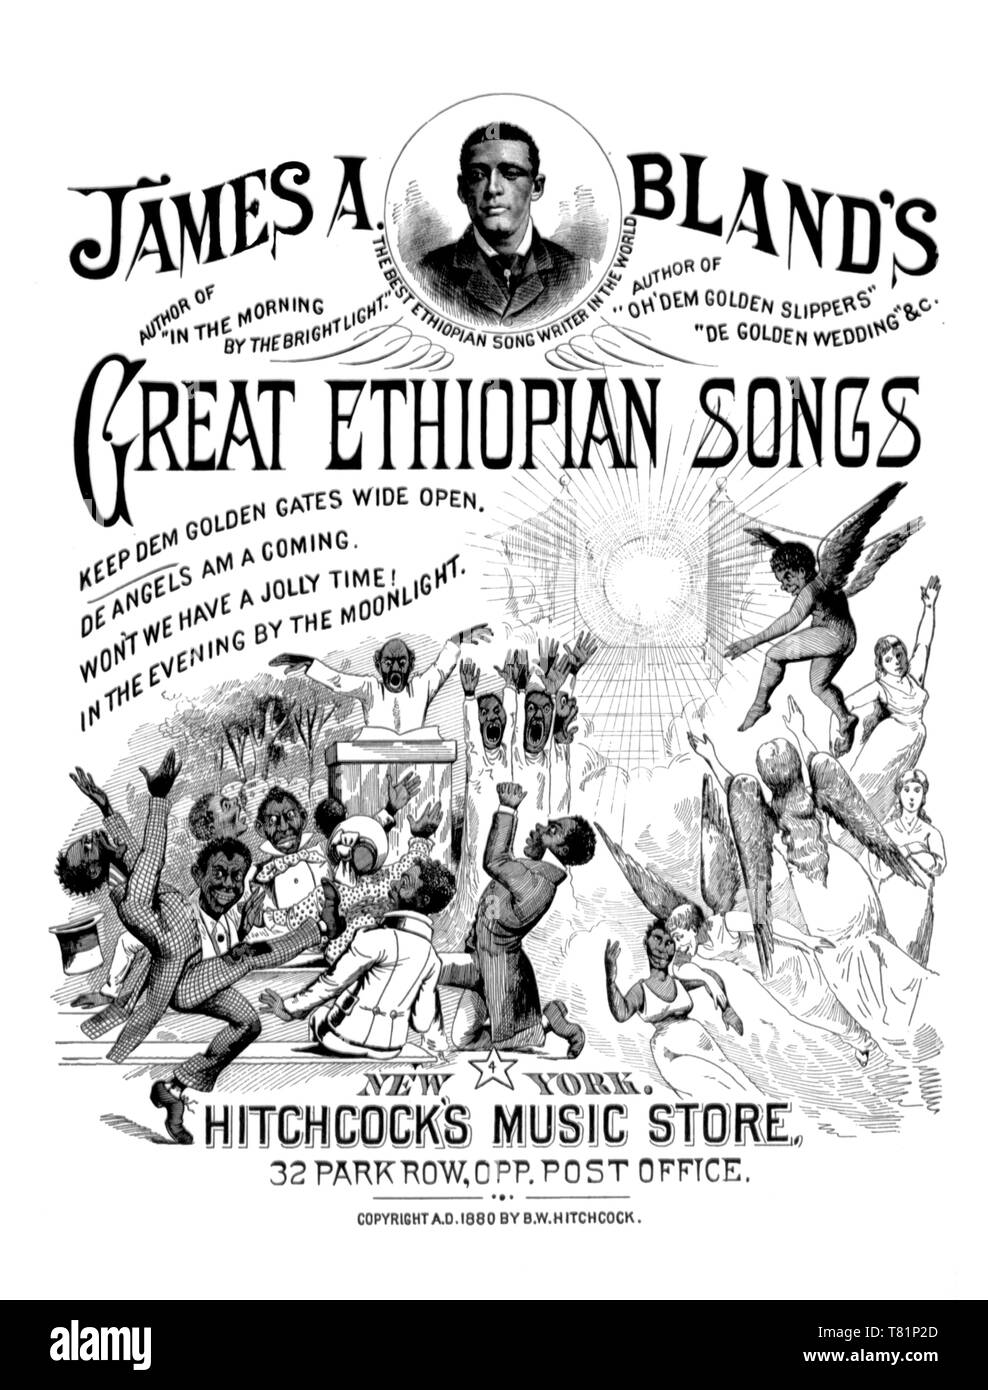 James A. Bland, Great Ethiopian Songs, 1880 - Stock Image